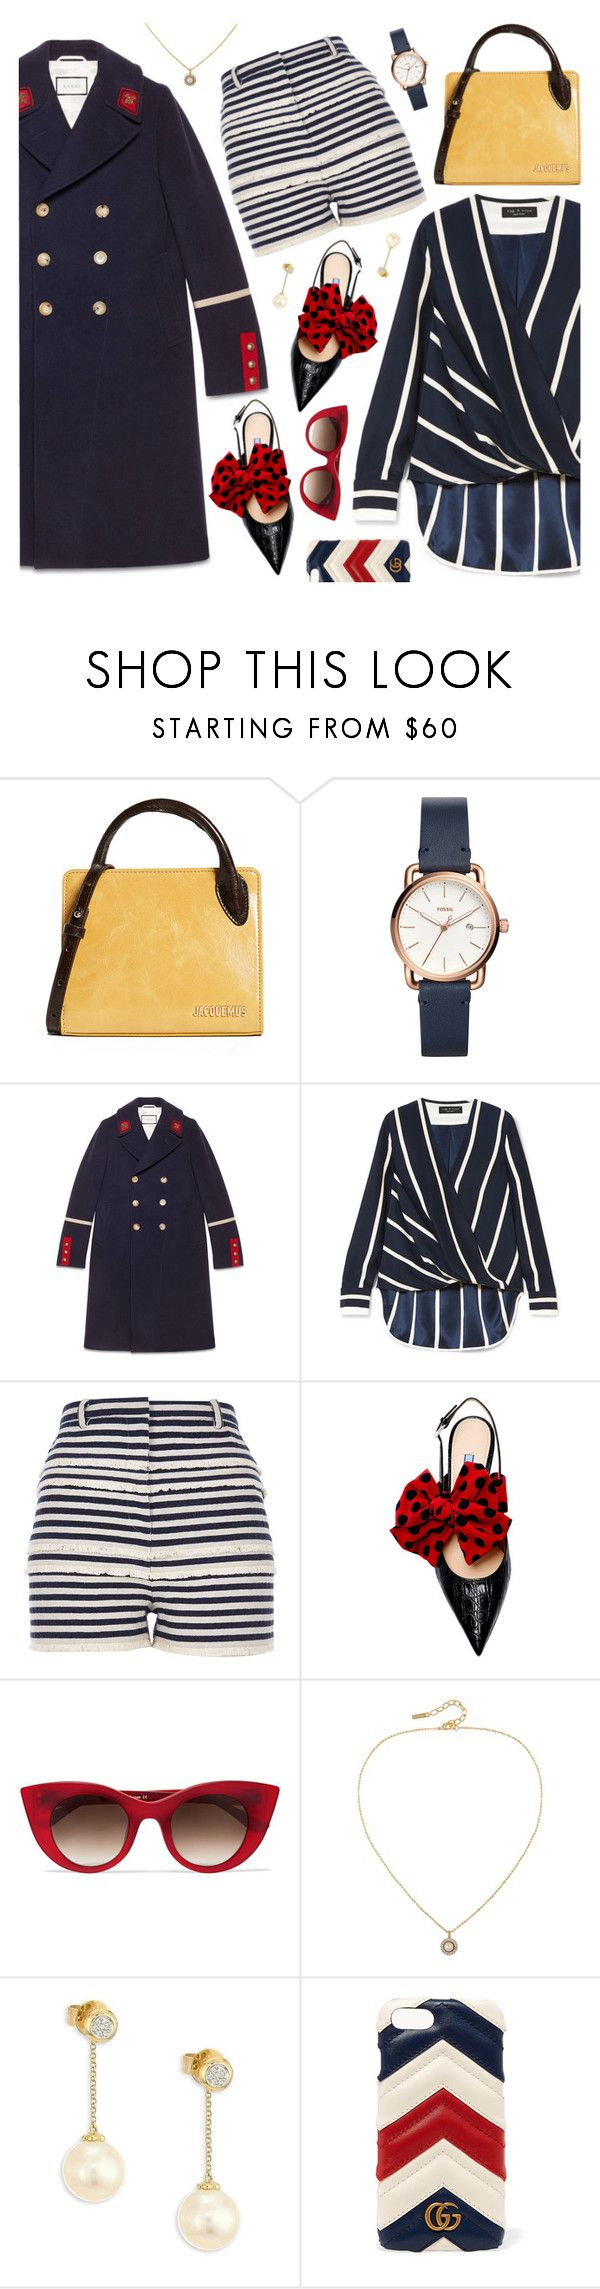 """Pattern Challenge: Stripes on Stripes"" by jychooi ❤ liked on Polyvore featuring Jacquemus, FOSSIL, Gucci, rag & bone, River Island, Thierry Lasry, Susan Caplan Vintage, Yoko London, contestentry and polyvorecontest"